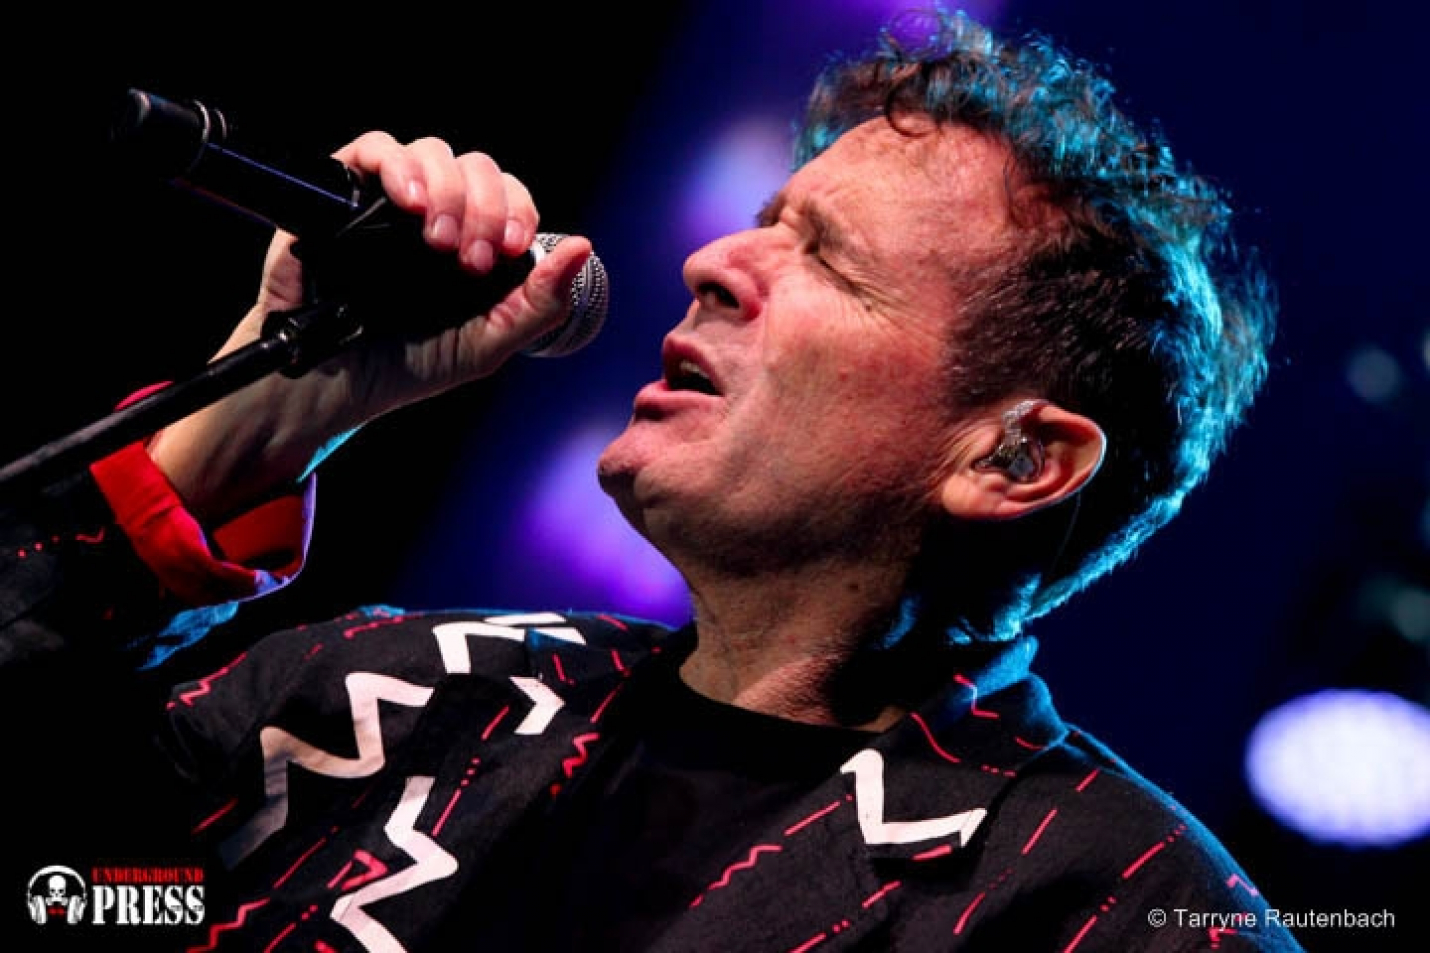 JOHNNY CLEGG - The Final Concert... Standing at the Edge